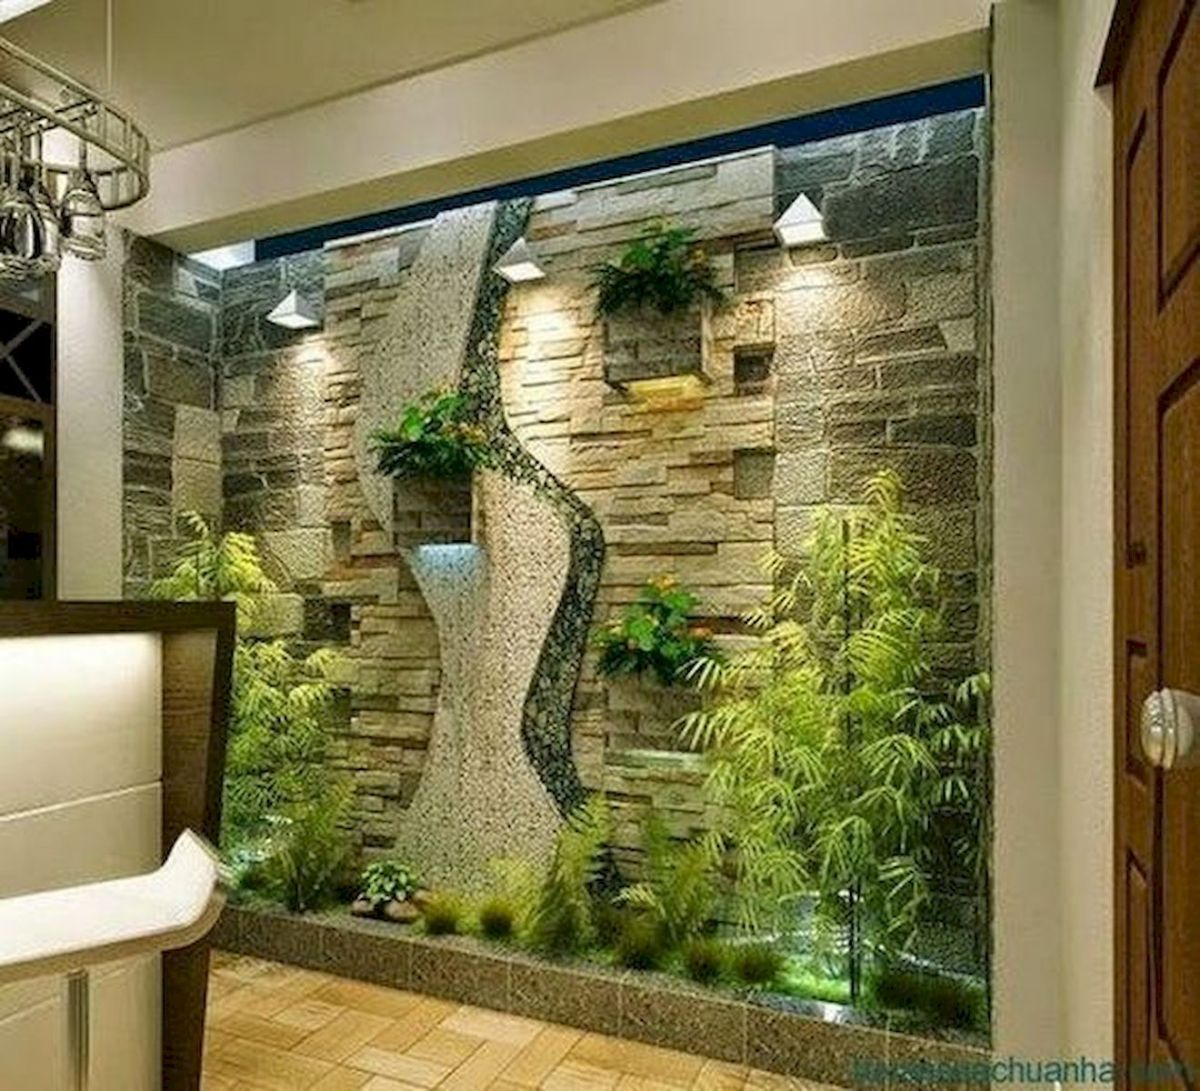 40 Awesome Indoor Garden Design Ideas That Look Beautiful (18)